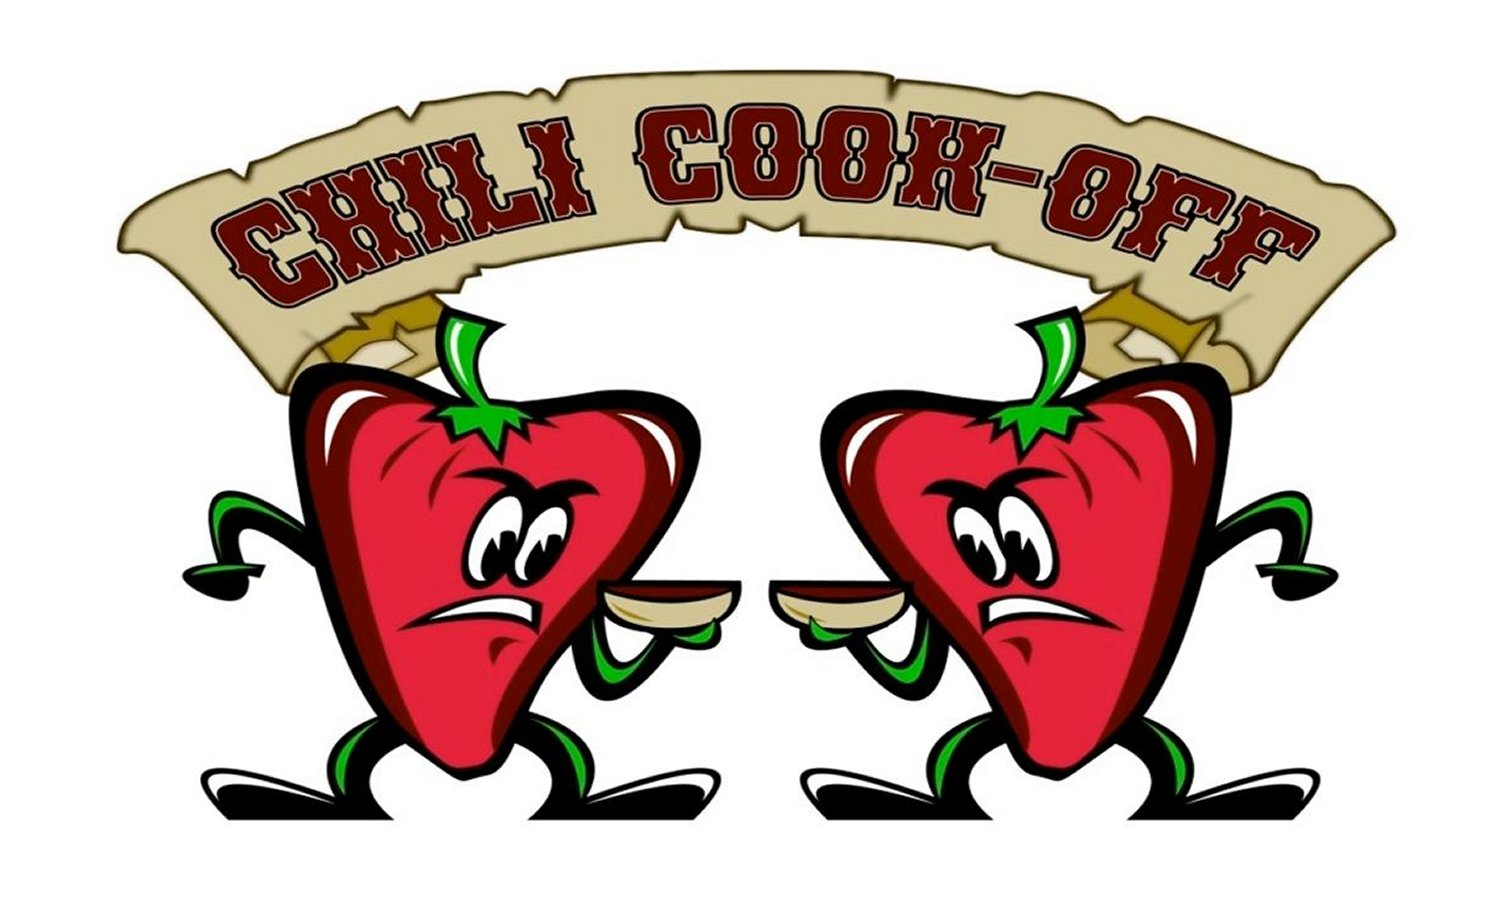 annual chili cook off and gift exchange kaweah fly fishers rh kaweahflyfishers org Chili Pepper Border Clip Art Chili Contest Clip Art